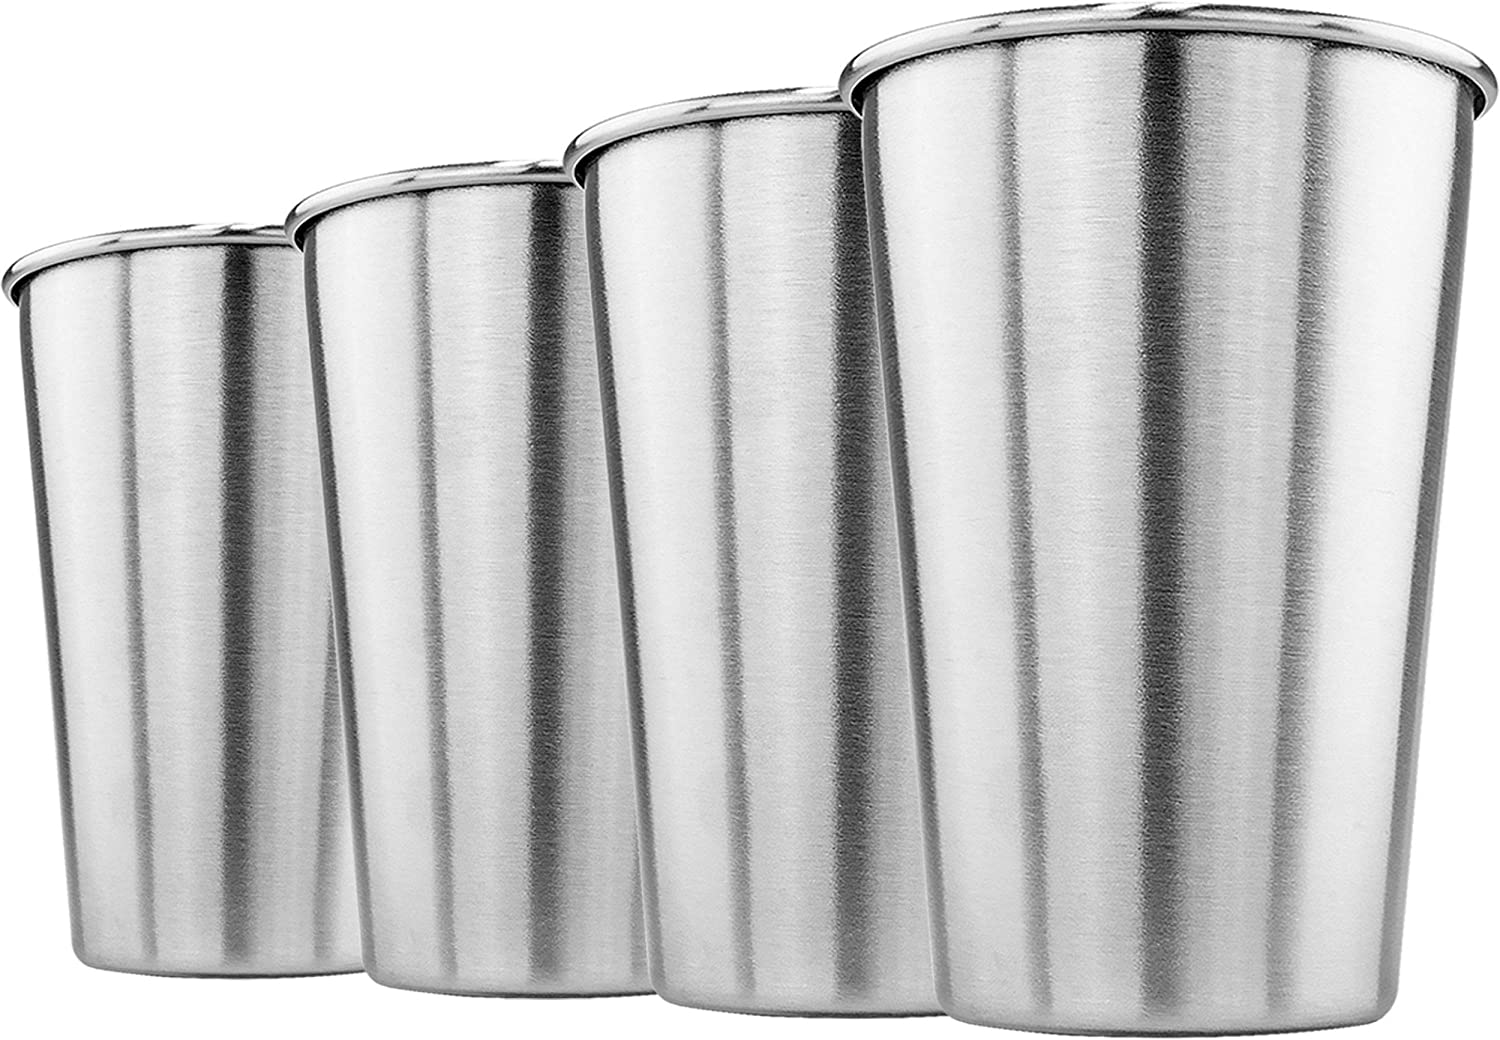 Southern Homewares Stainless Steel Pint Glass 16oz Metal Cup Beer Soda Drink Tumbler Set of Four